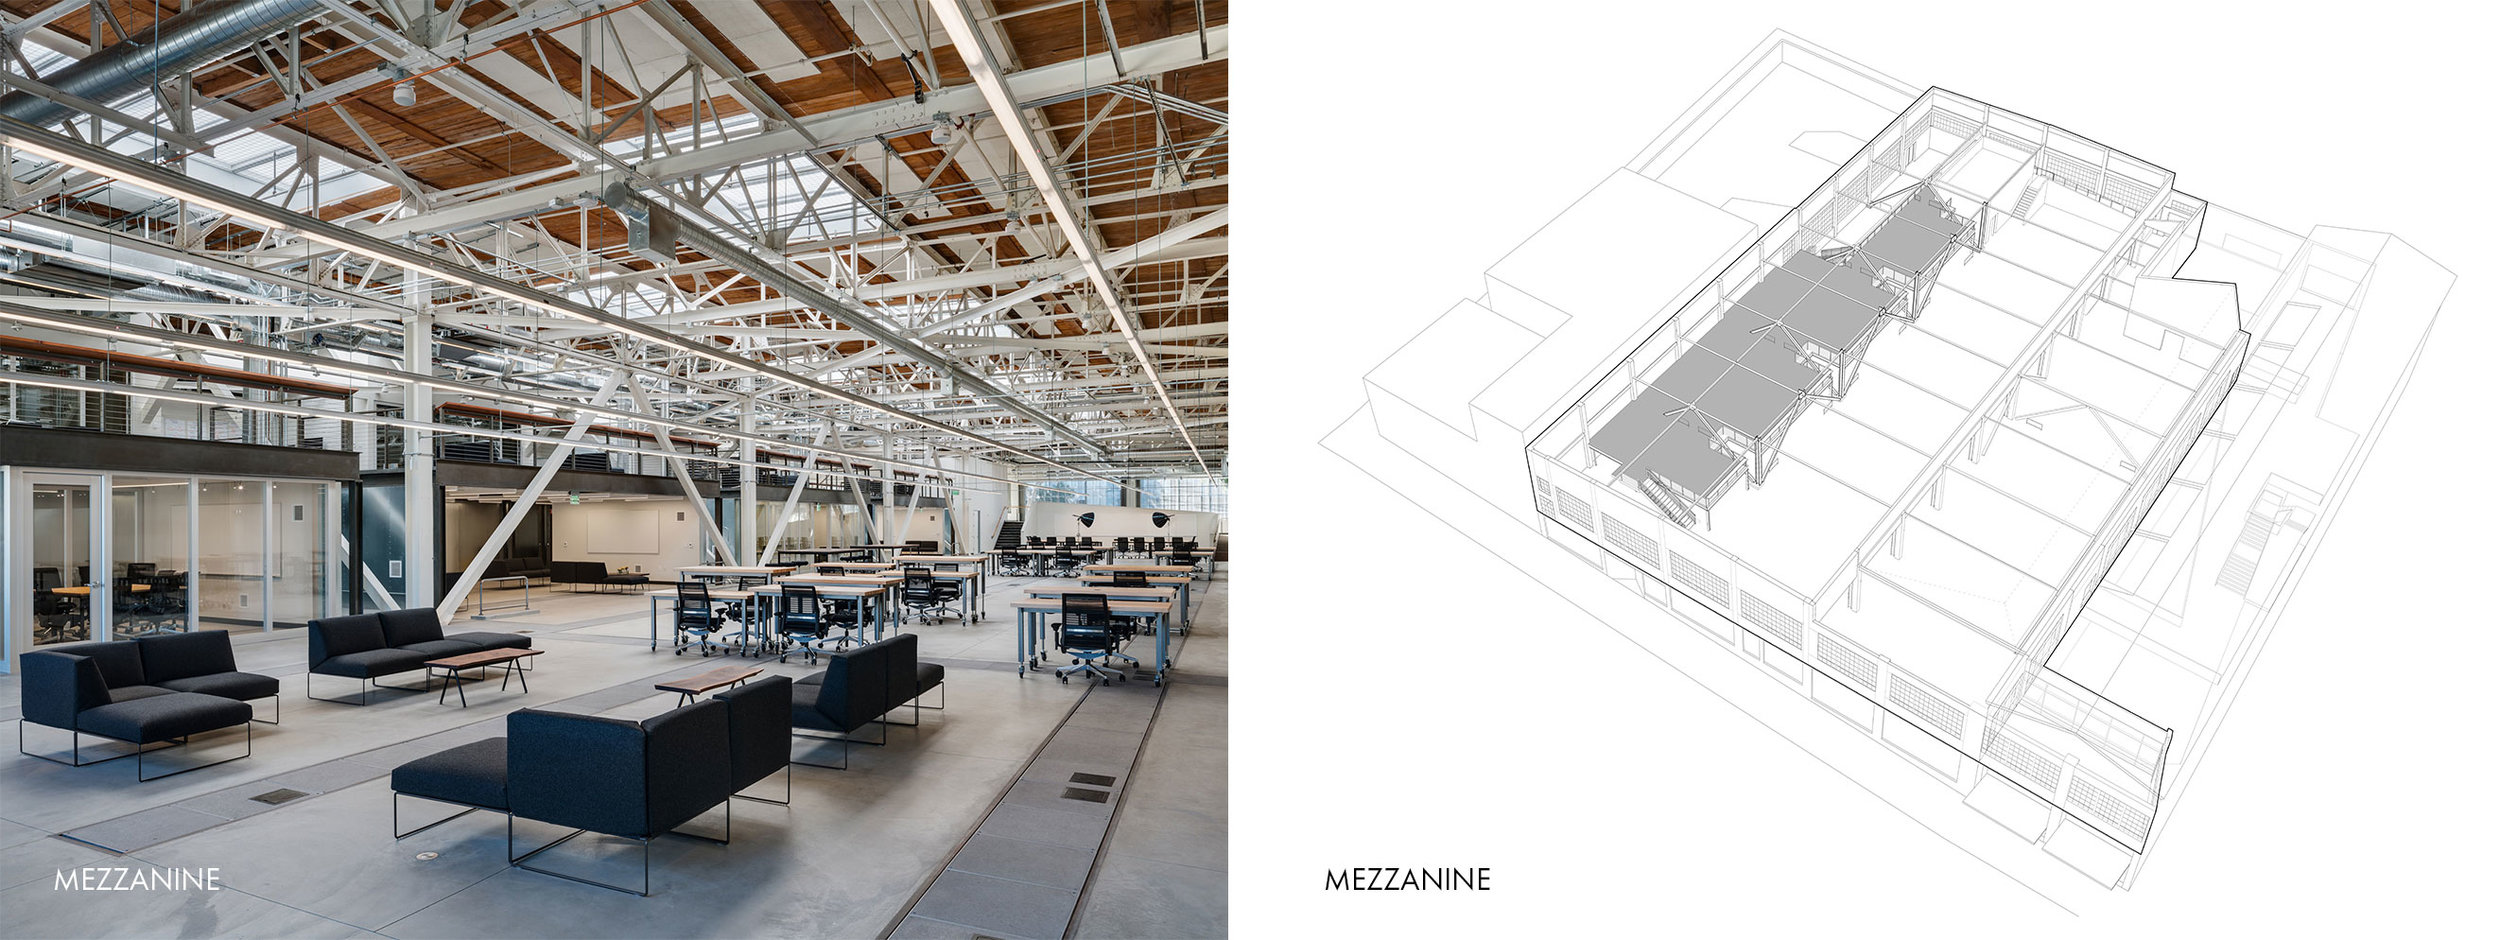 San Francisco Workplace, Office, Adaptive Reuse, Tech Company, Open Workspace, Flexible Office, Mezzanine Daigram